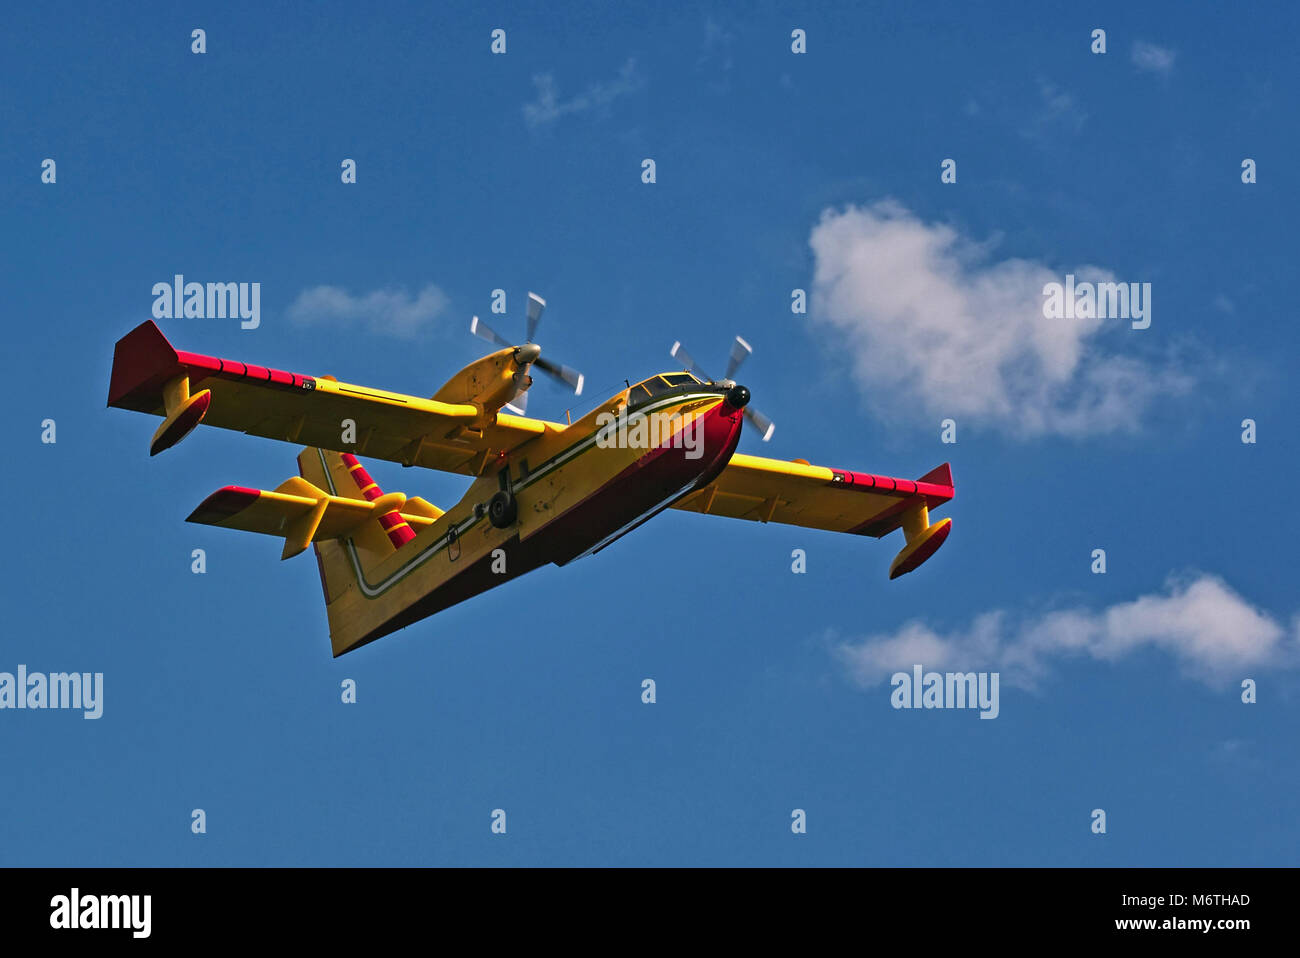 bombardier 415,  canadian amphibious aircraft in flight - Stock Image